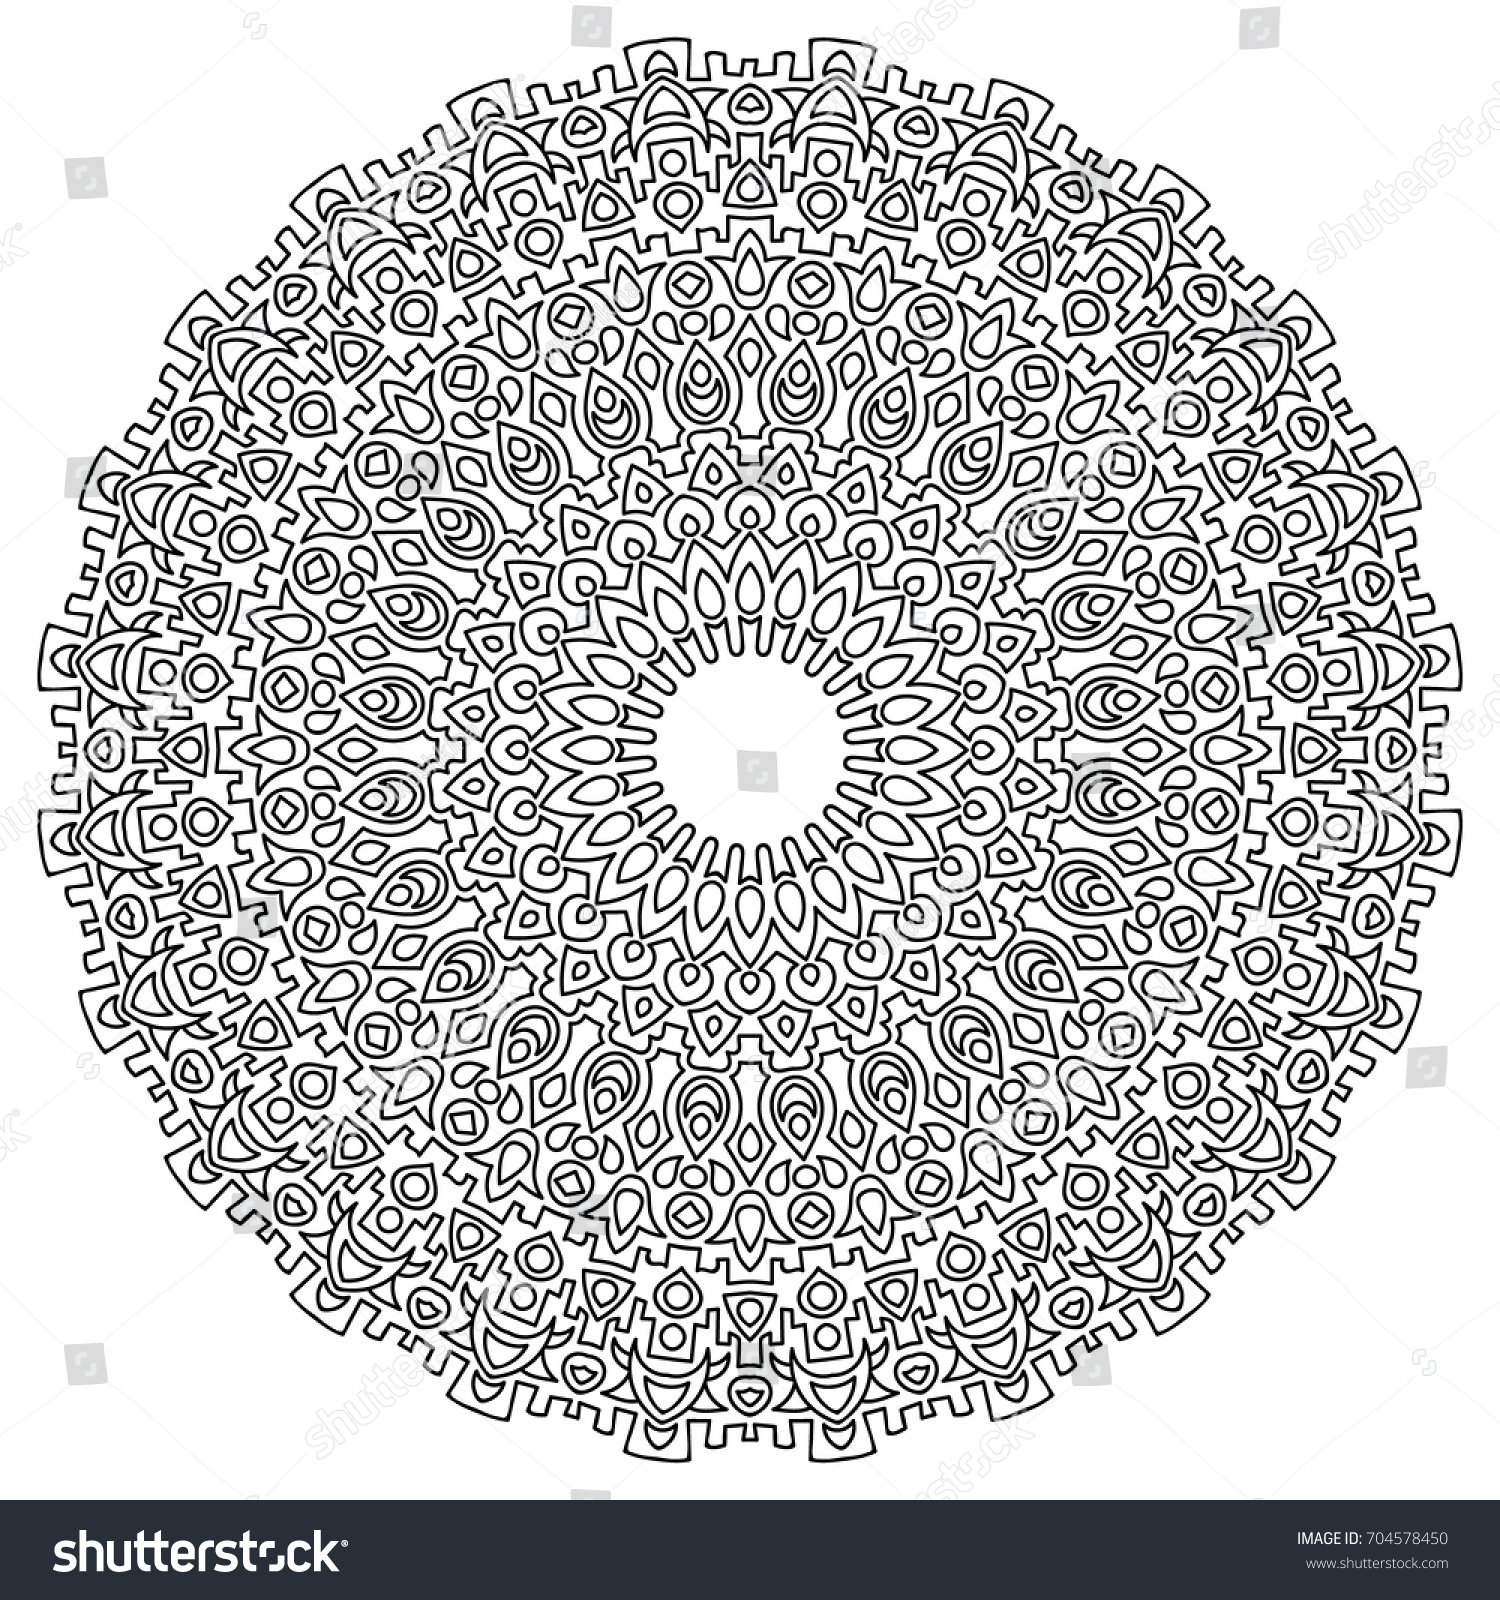 Adult Coloring Page Outline Mandala Black Stock Vector 704578450 ...